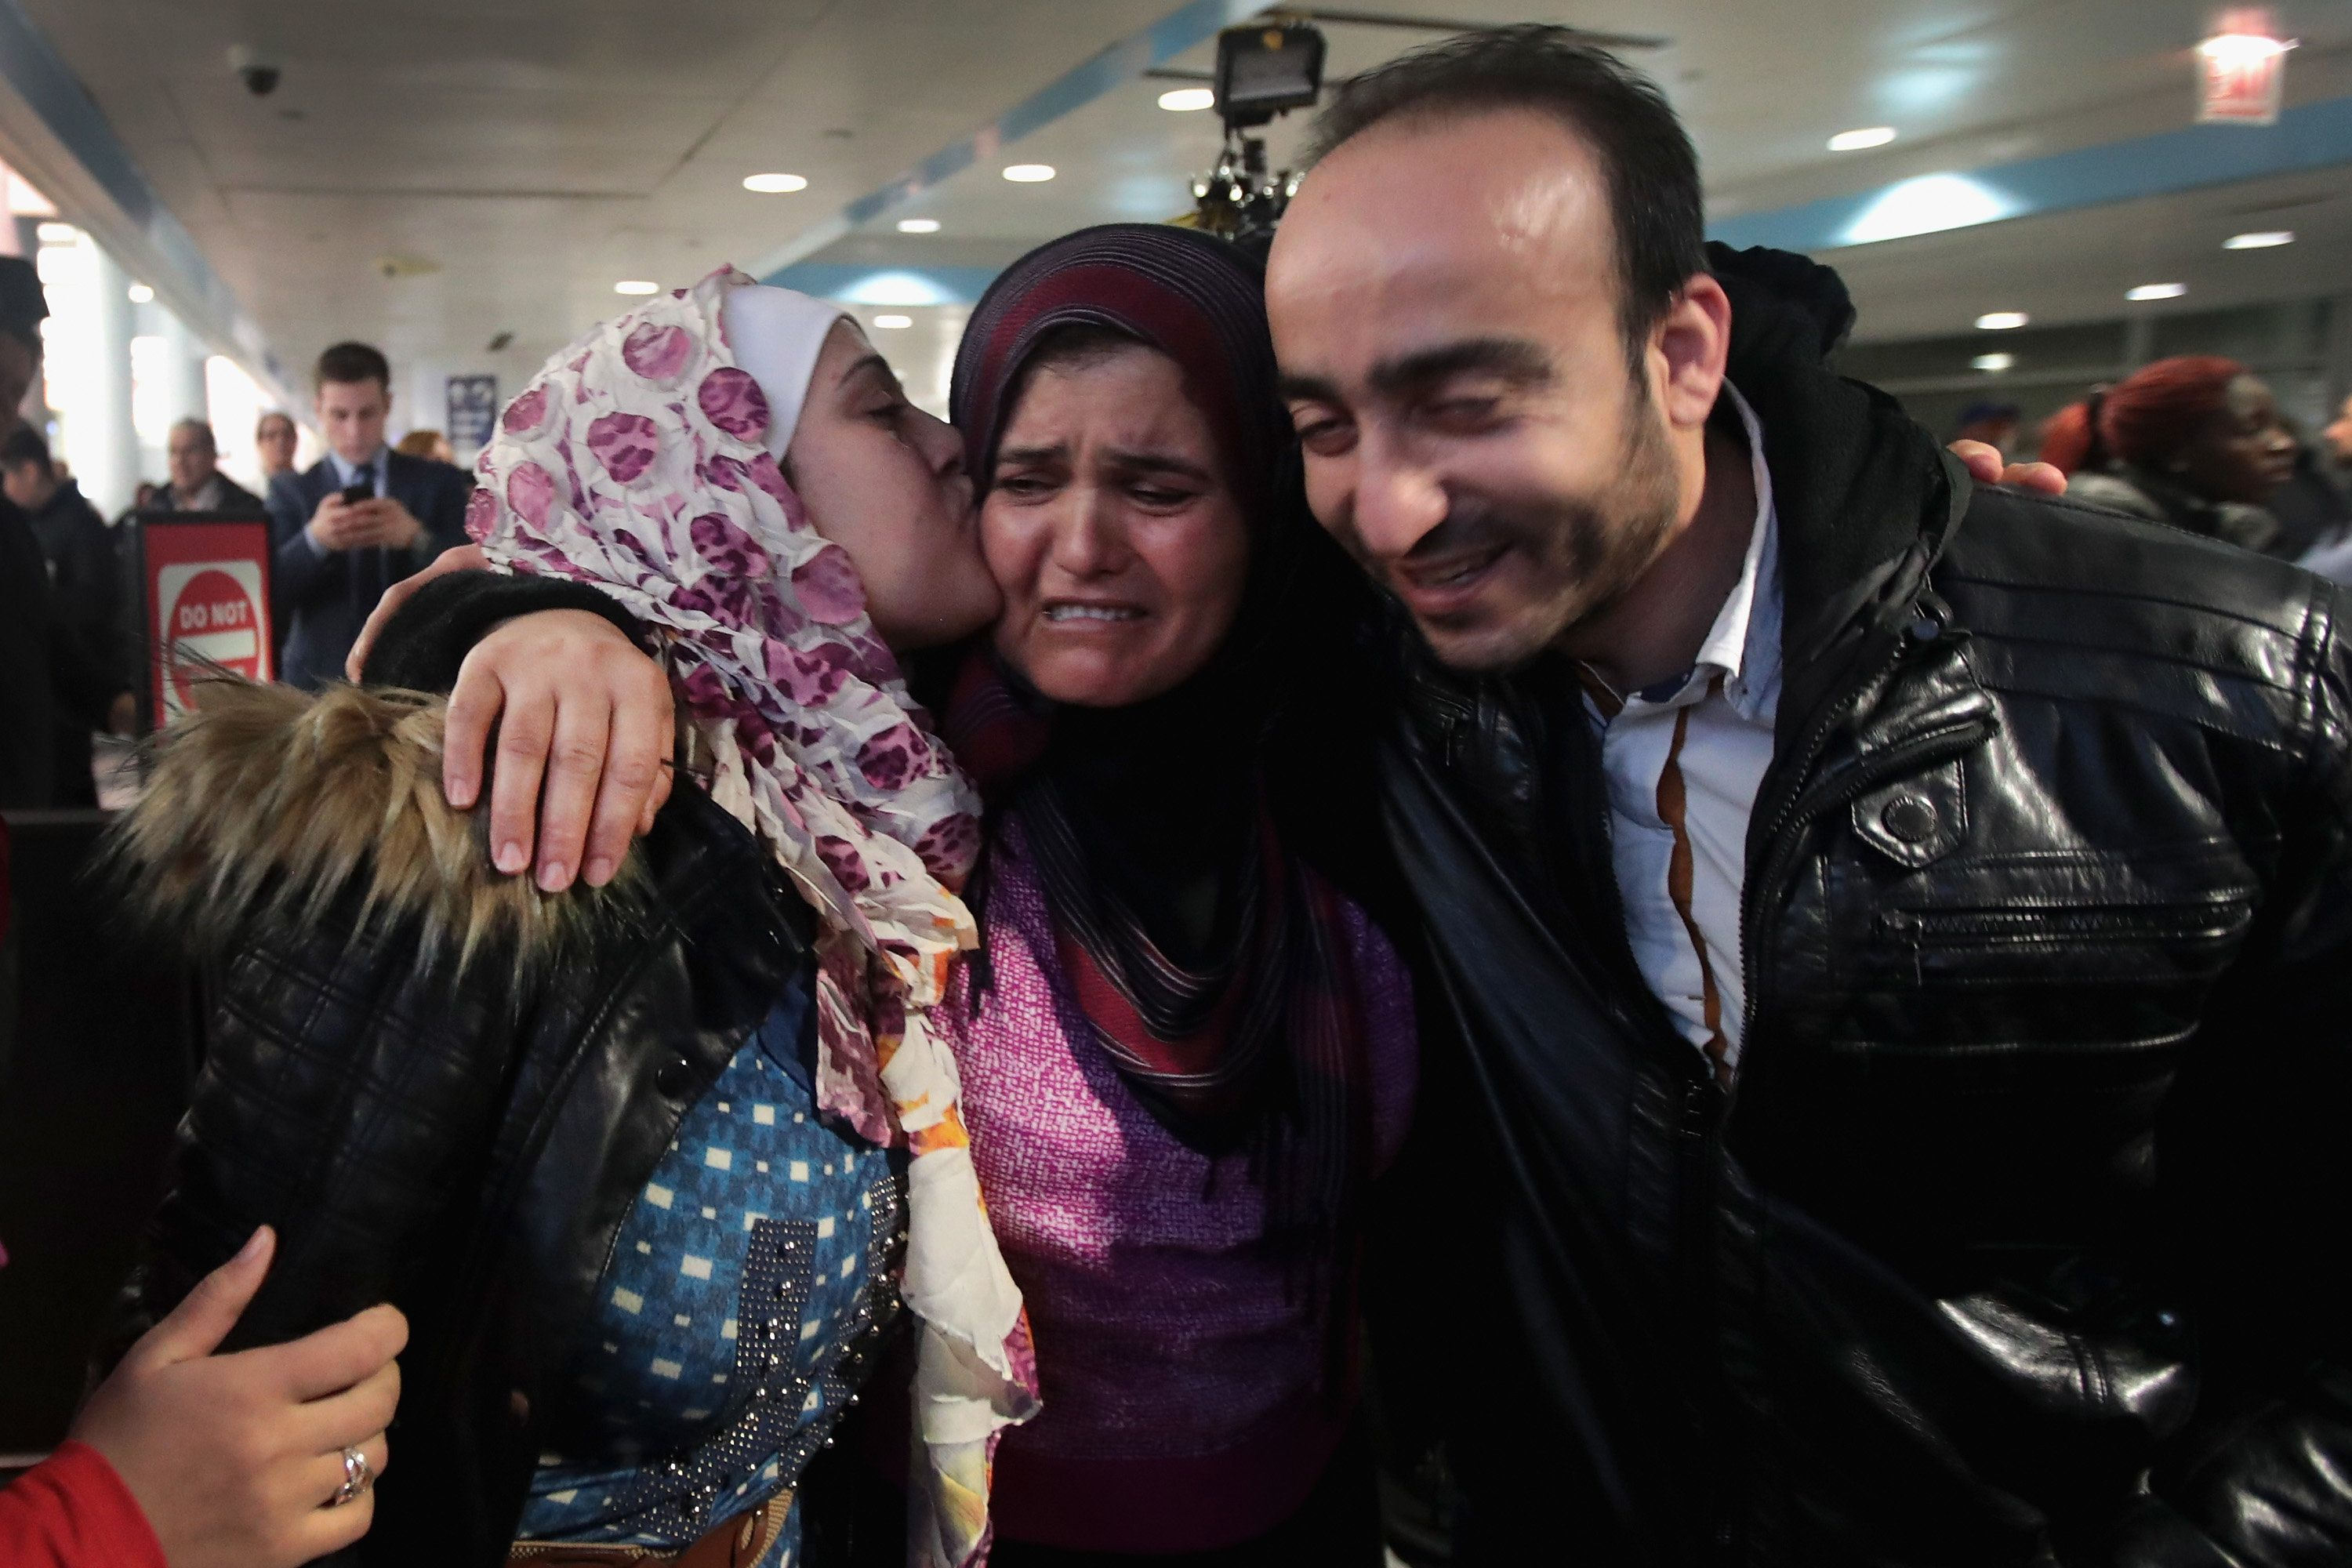 Syrian refugee Baraa Hajj Khalaf, left, and her husband, Abulmajeed, are greeted by her mother, Fattuom, after a second-attem